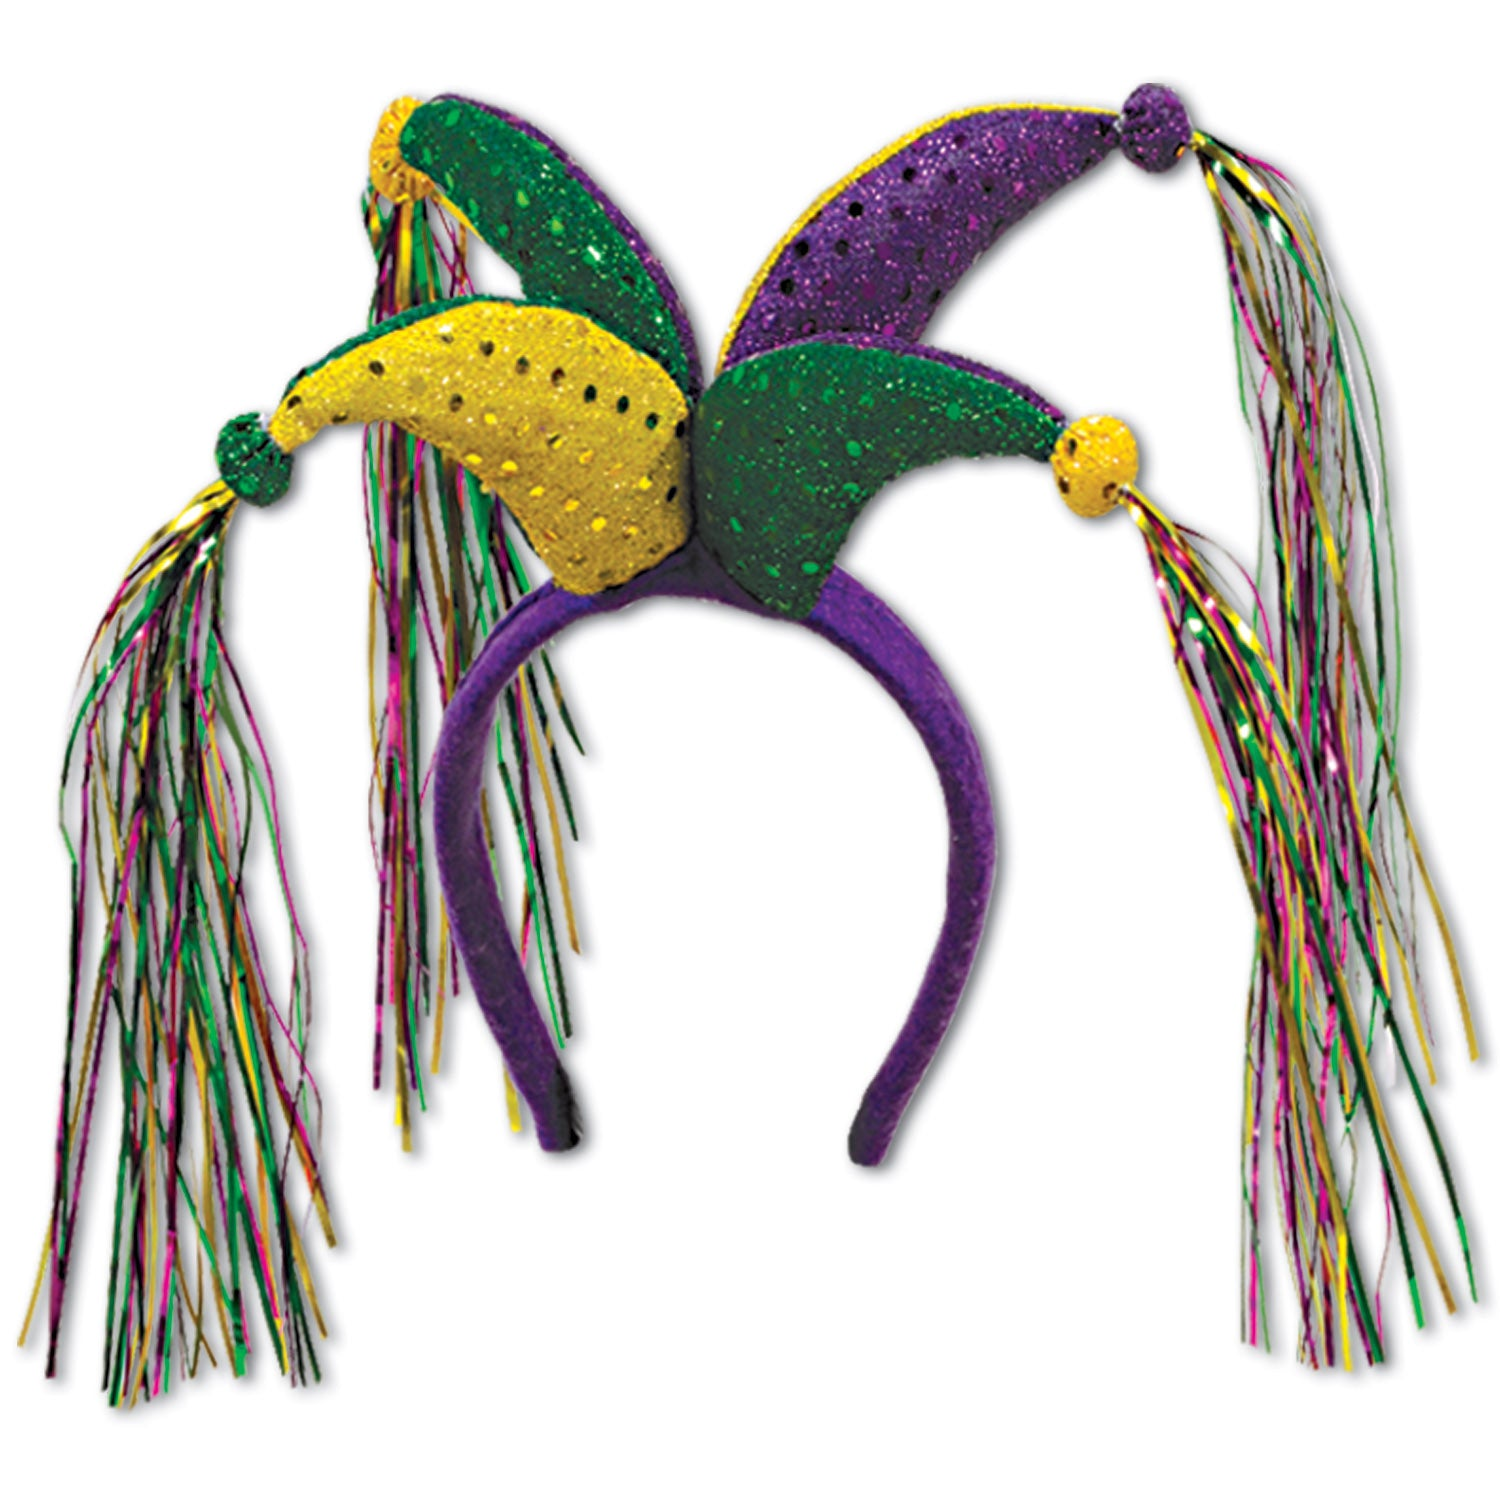 Jester Headband by Beistle - Mardi Gras Theme Decorations